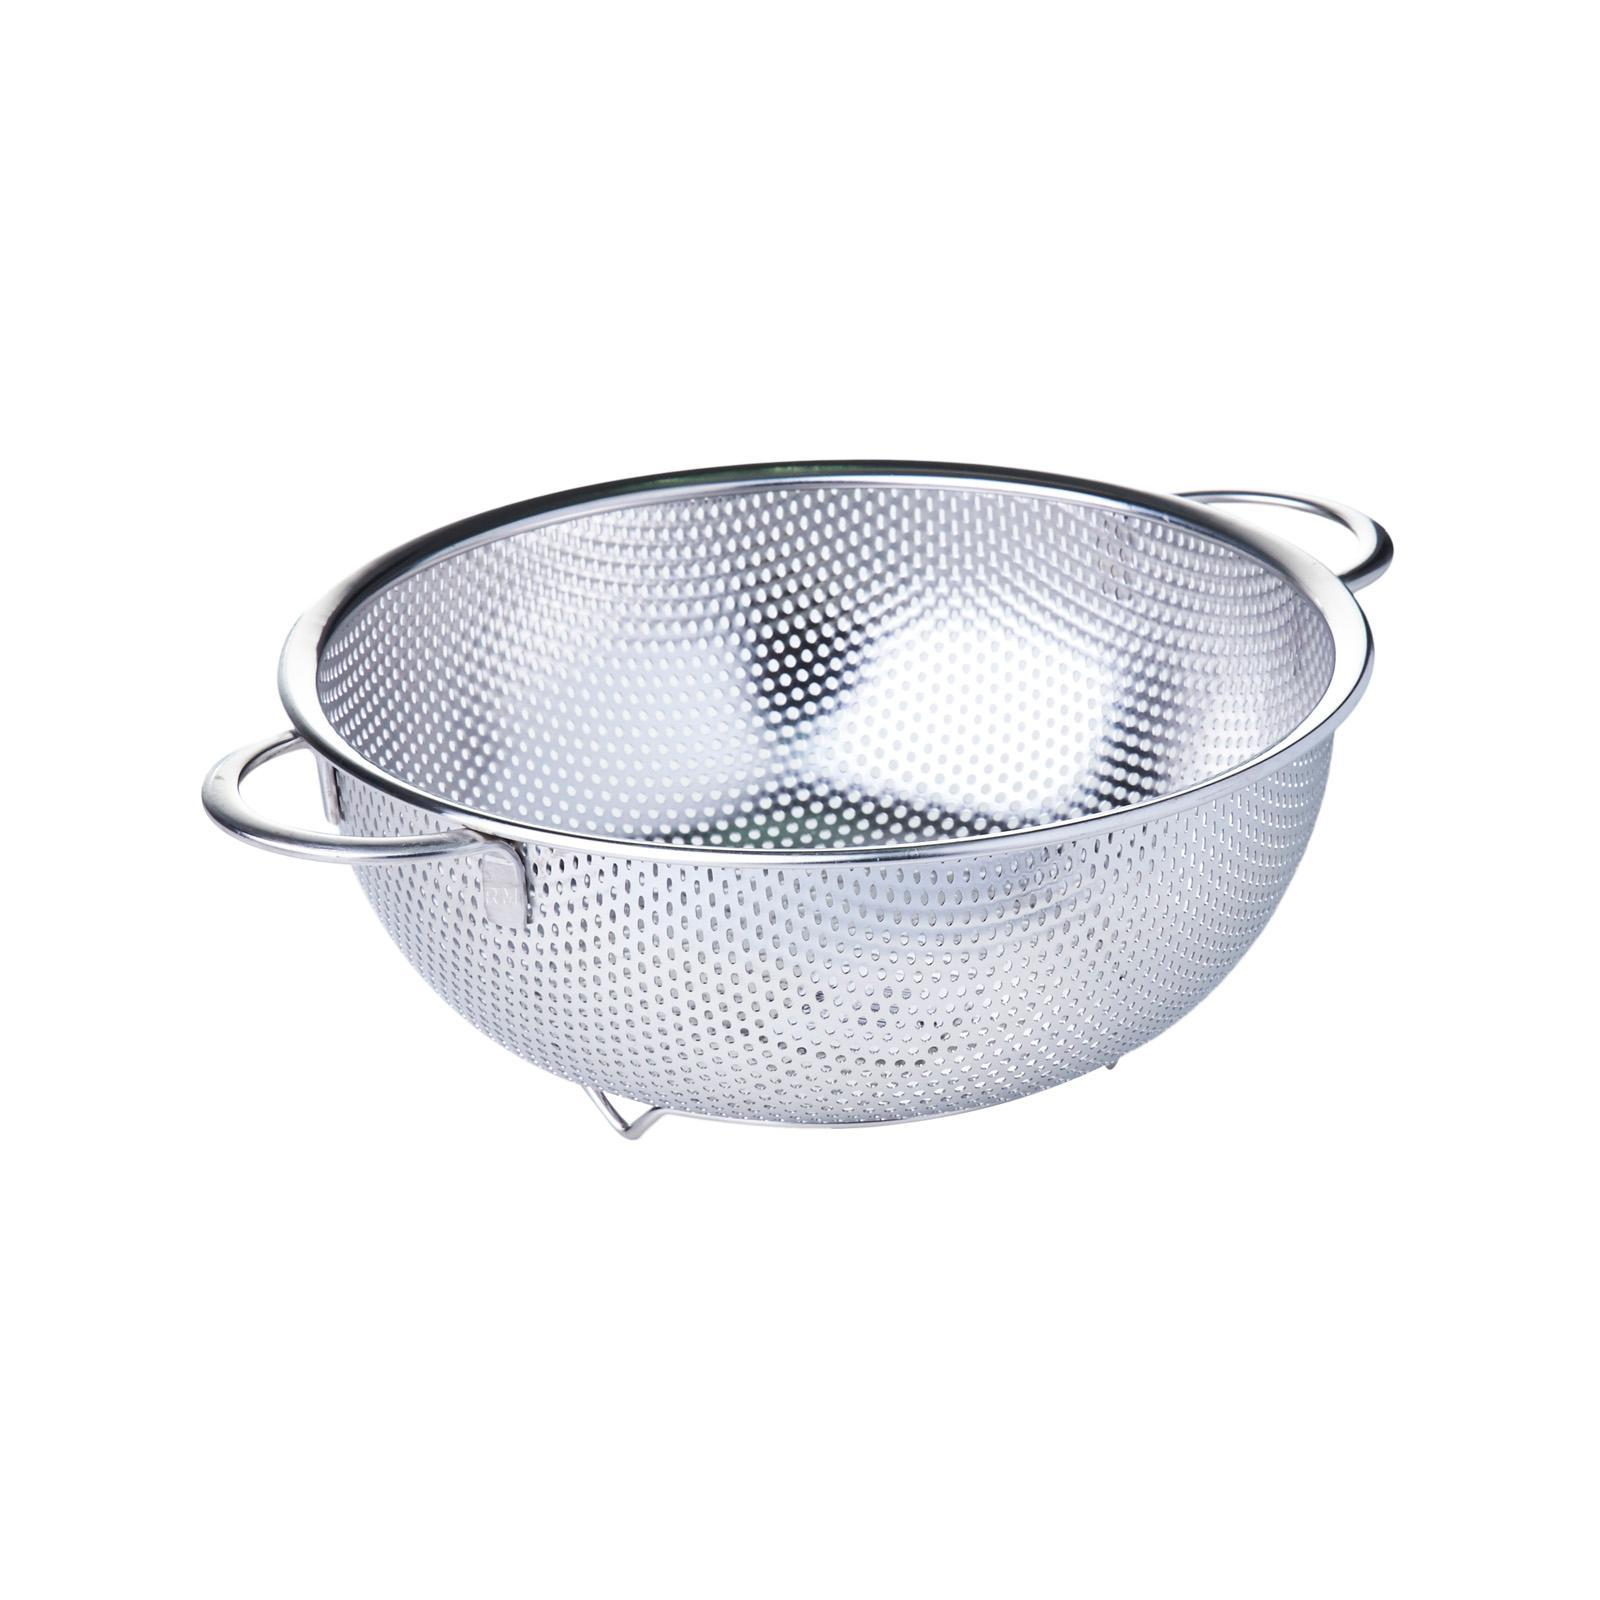 Sunnex Stainless Steel Mesh Basket With Wire Handle